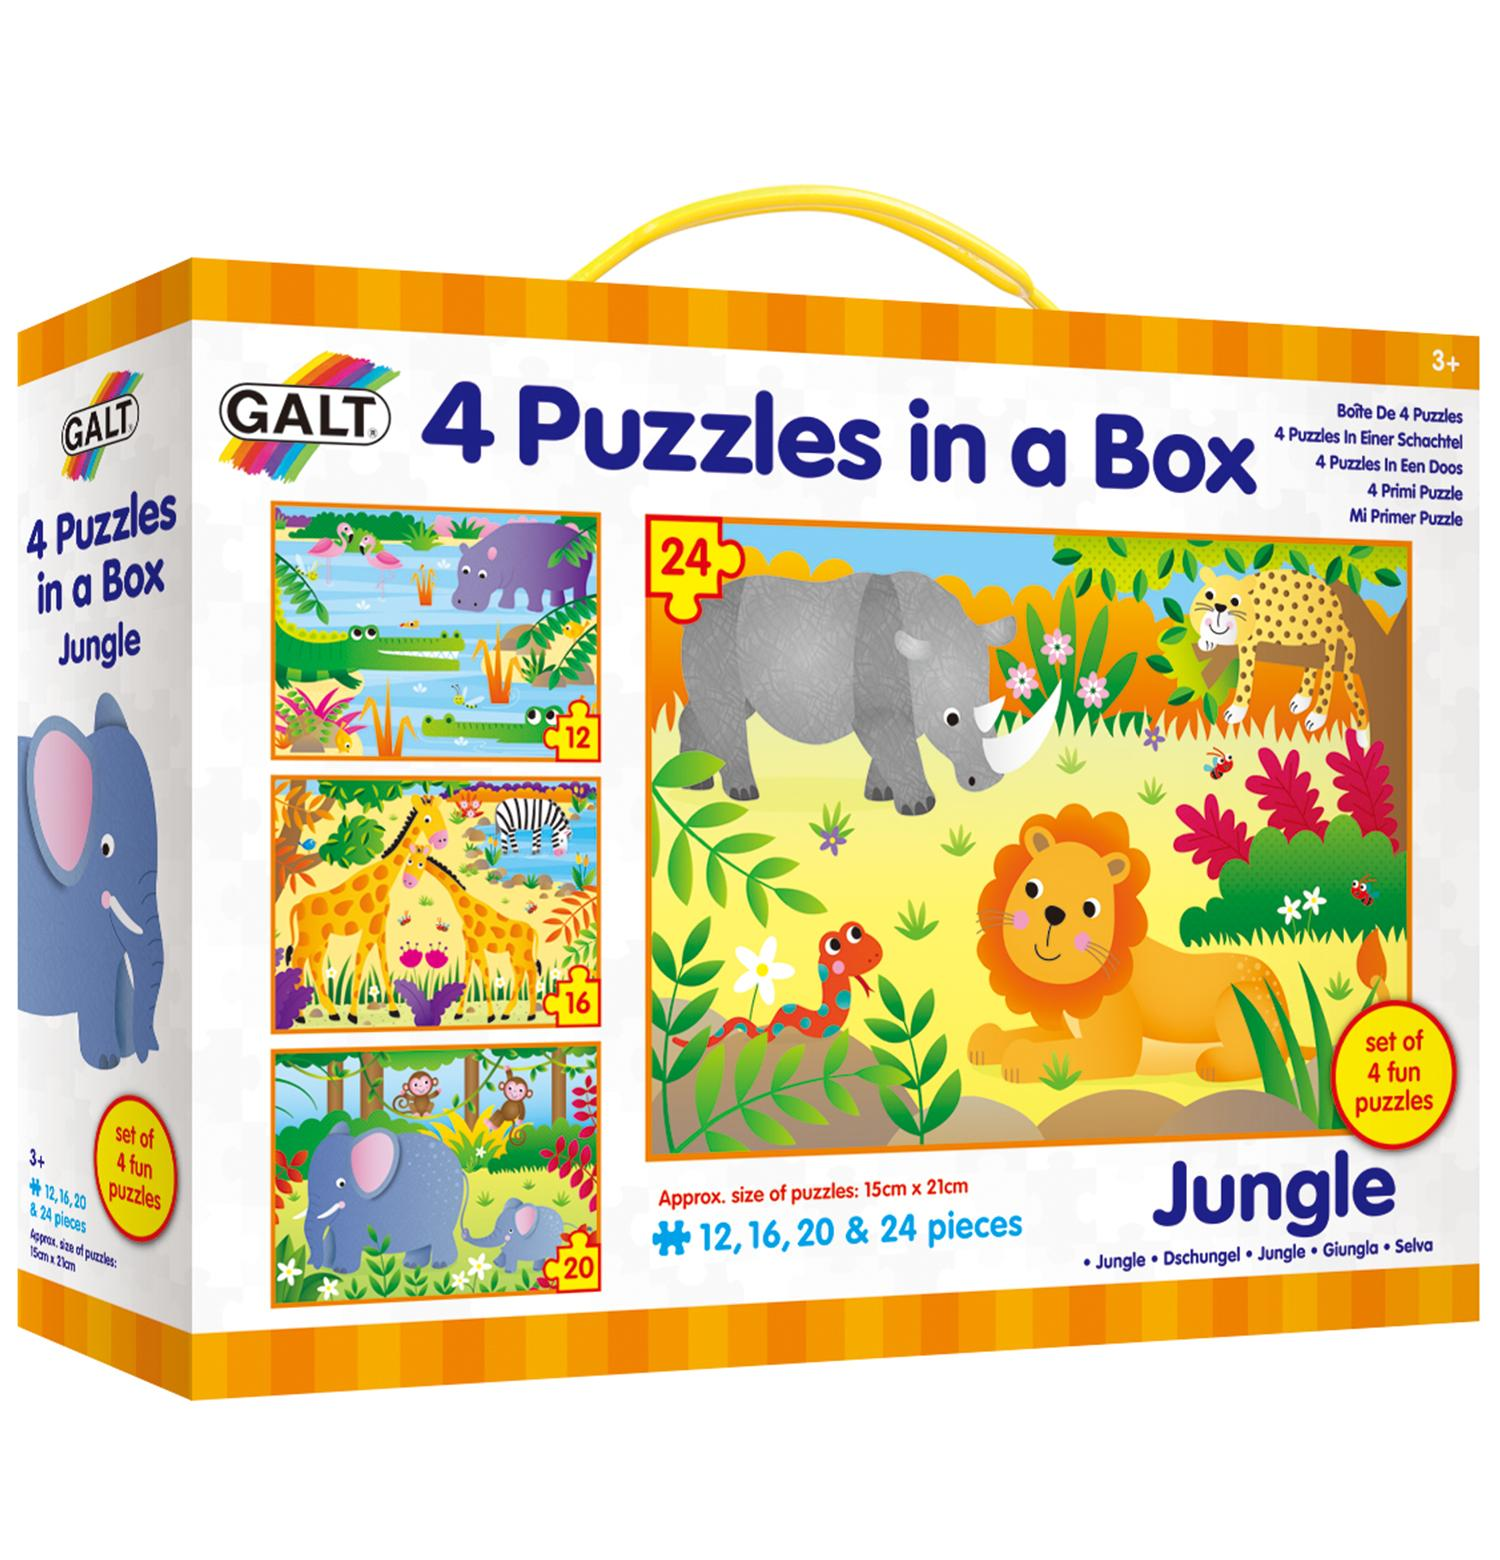 Galt 4 Puzzles in a Box - Jungle